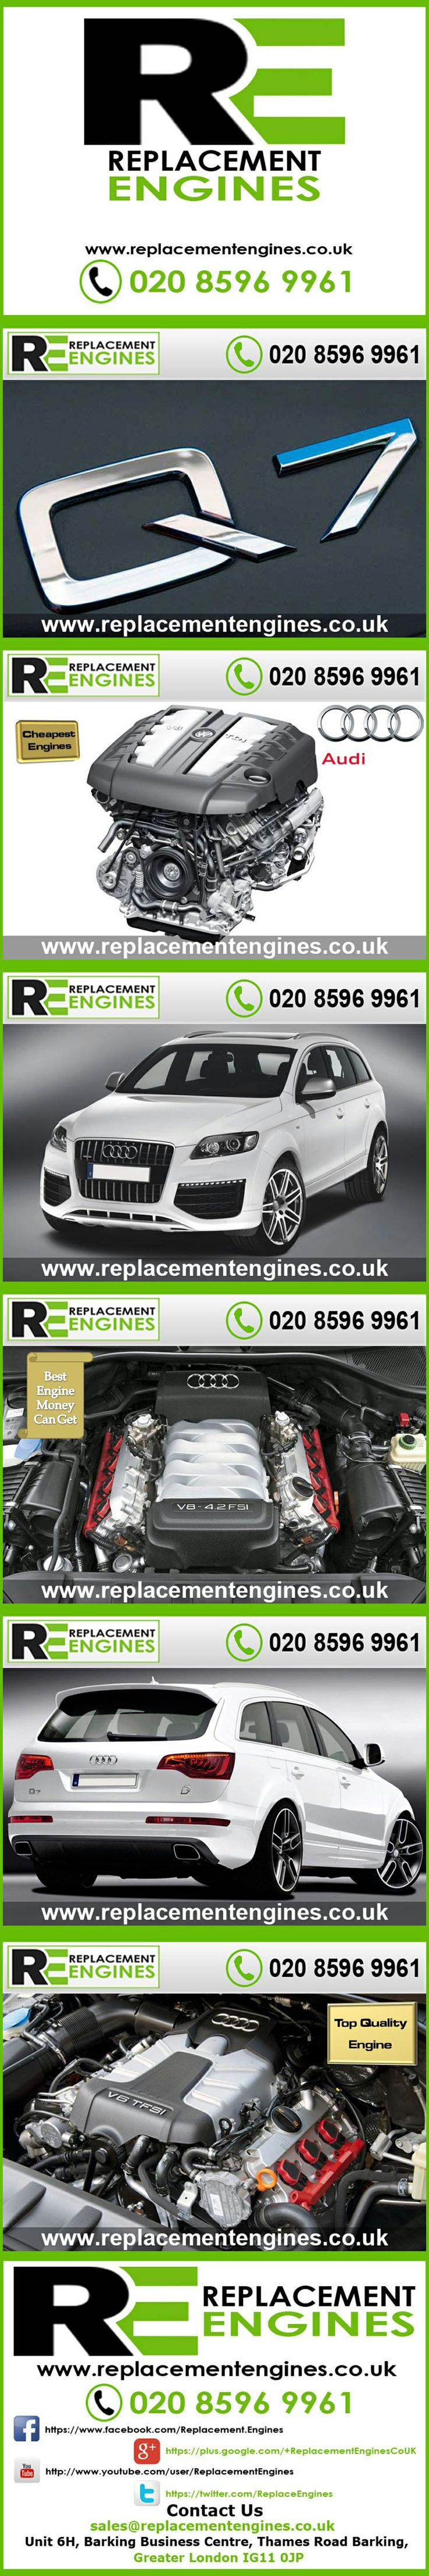 Audi Q7 engines for sale at the cheapest prices, we have low mileage used & reconditioned engines in stock now, ready to be delivered to anywhere in the UK or overseas, visit Replacement Engines website here.